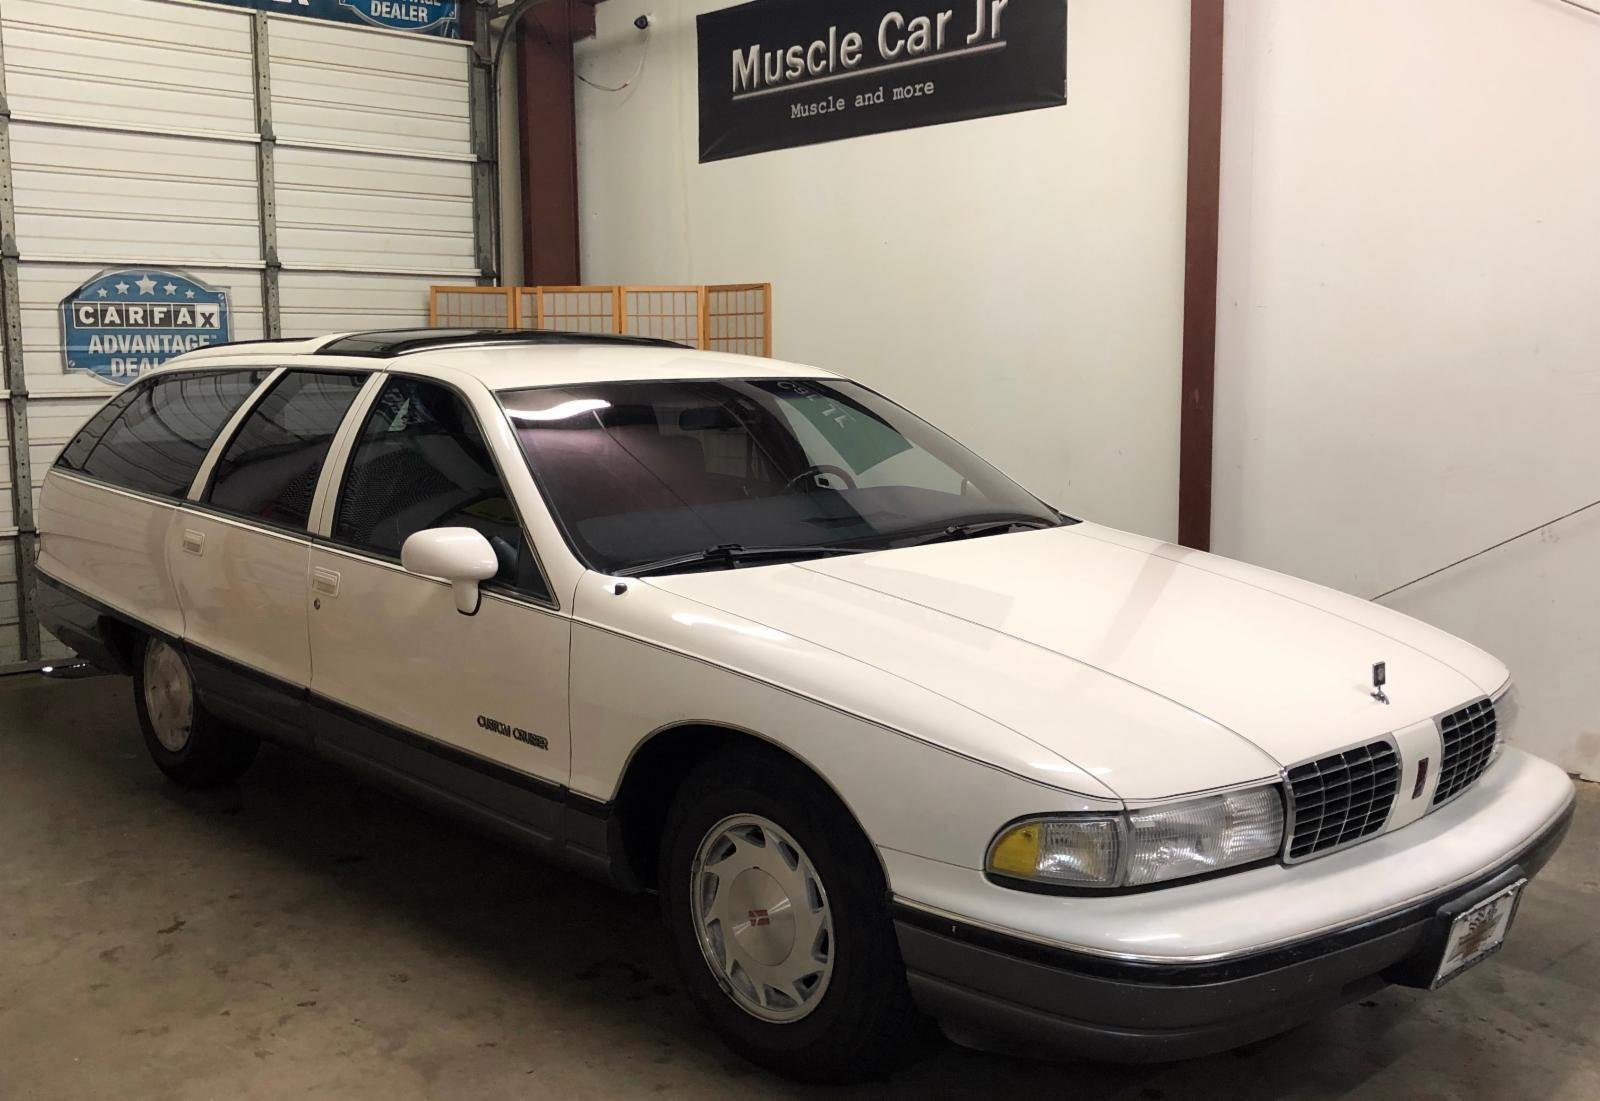 1992 Oldsmobile 98 Custom Cruiser Station Wagon For Sale (picture 1 of 6)